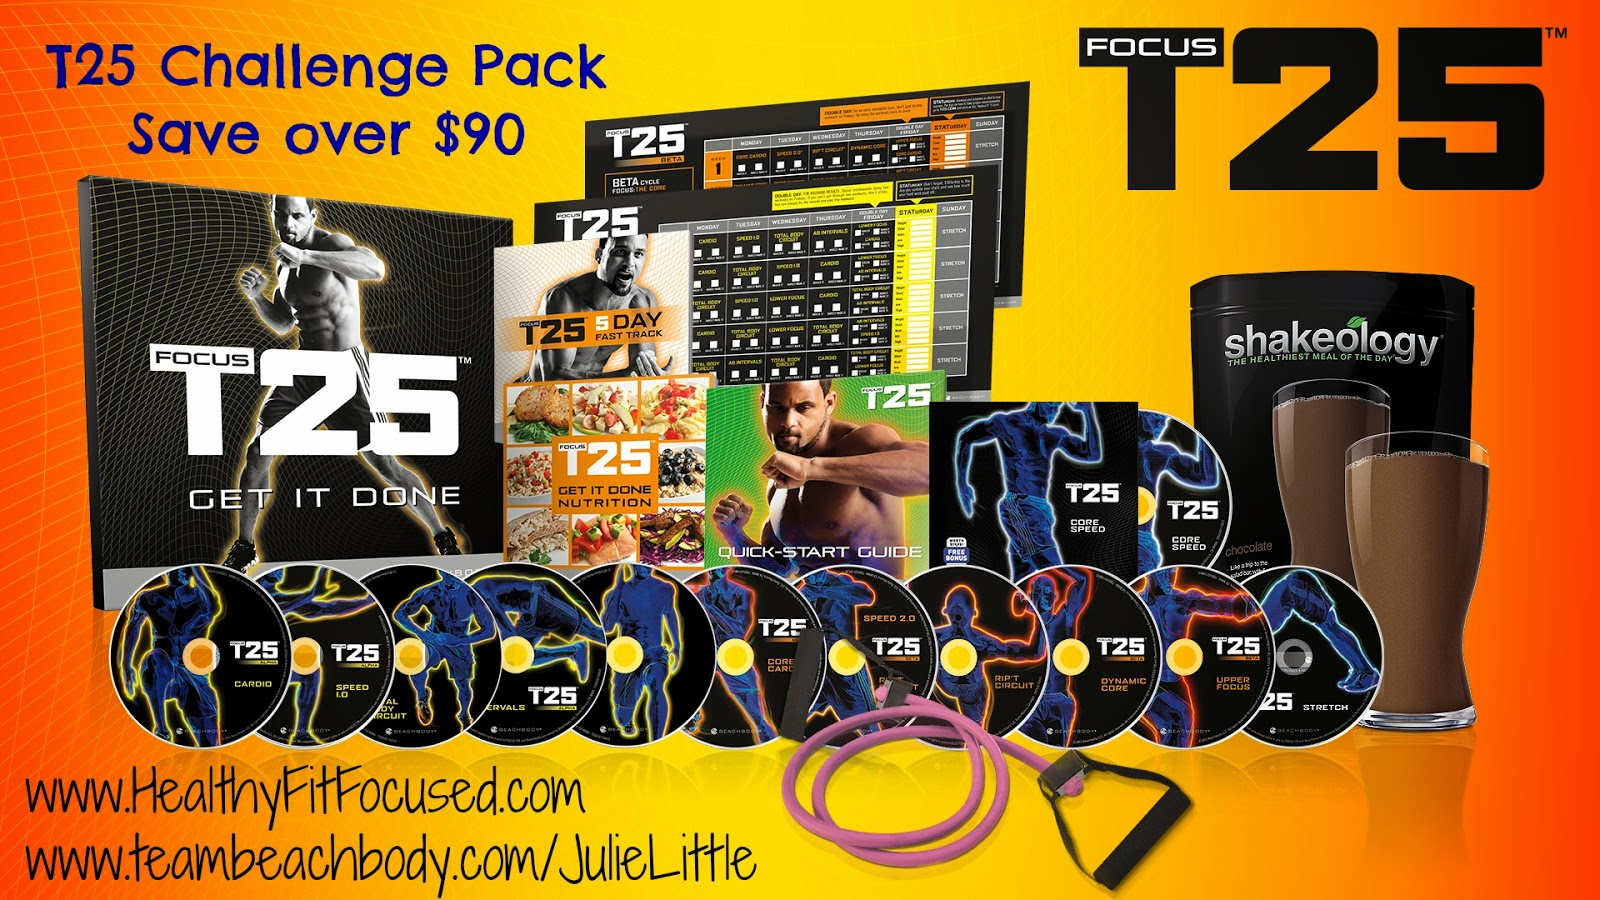 T25 Challenge Pack, www.HealthyFitFocused.com